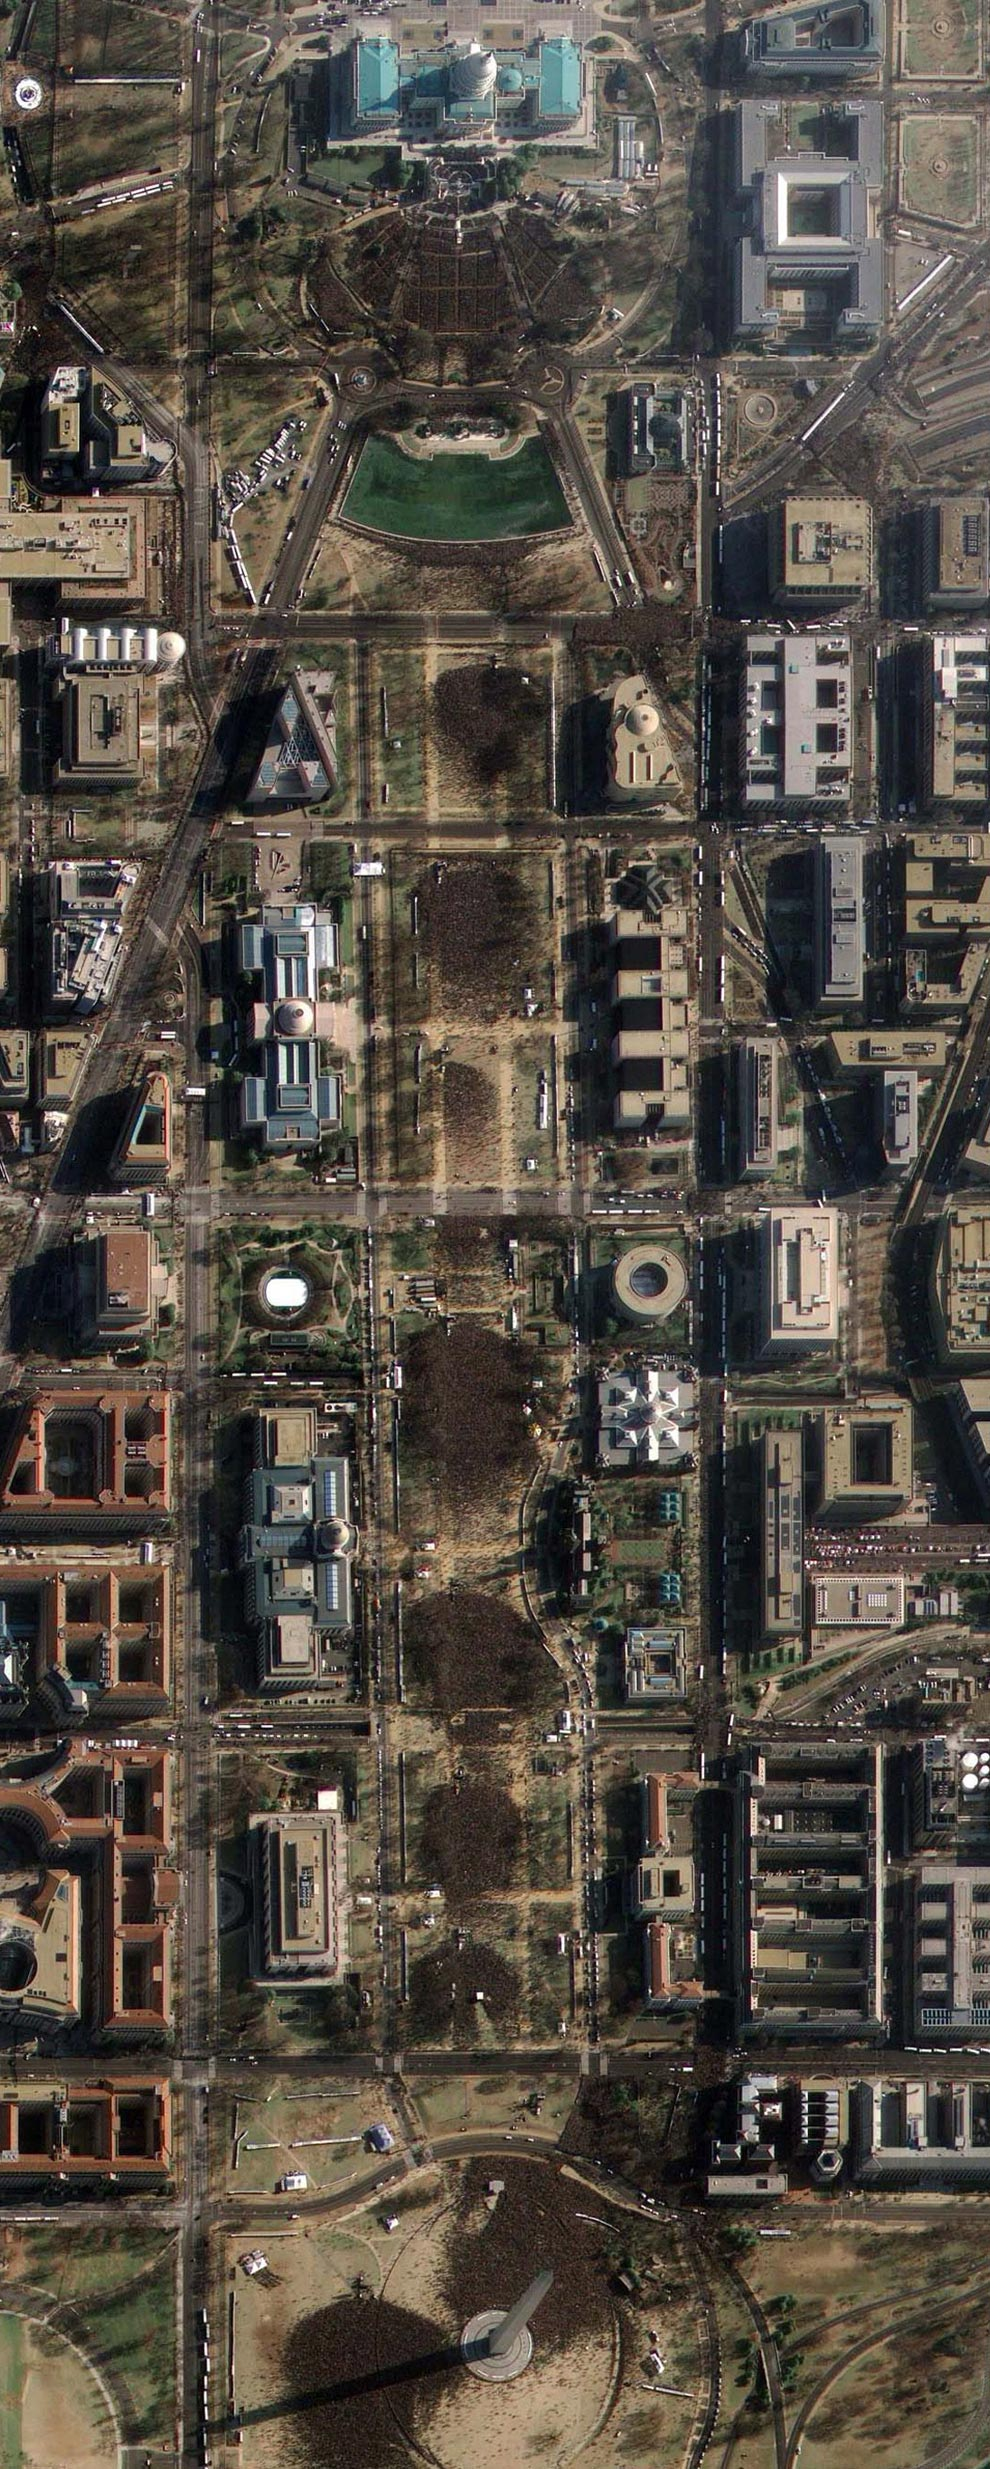 This image provided by GeoEye Satellite Image shows Washington D.C.'s National Mall and the United States Capitol (top), in Washington D.C. on Tuesday, Jan. 20, 2009 taken at 11:19AM EDT during the inauguration of President Barack Obama. The image, taken through high, wispy white clouds, shows the masses of people between the Capitol and the Washington Monument.